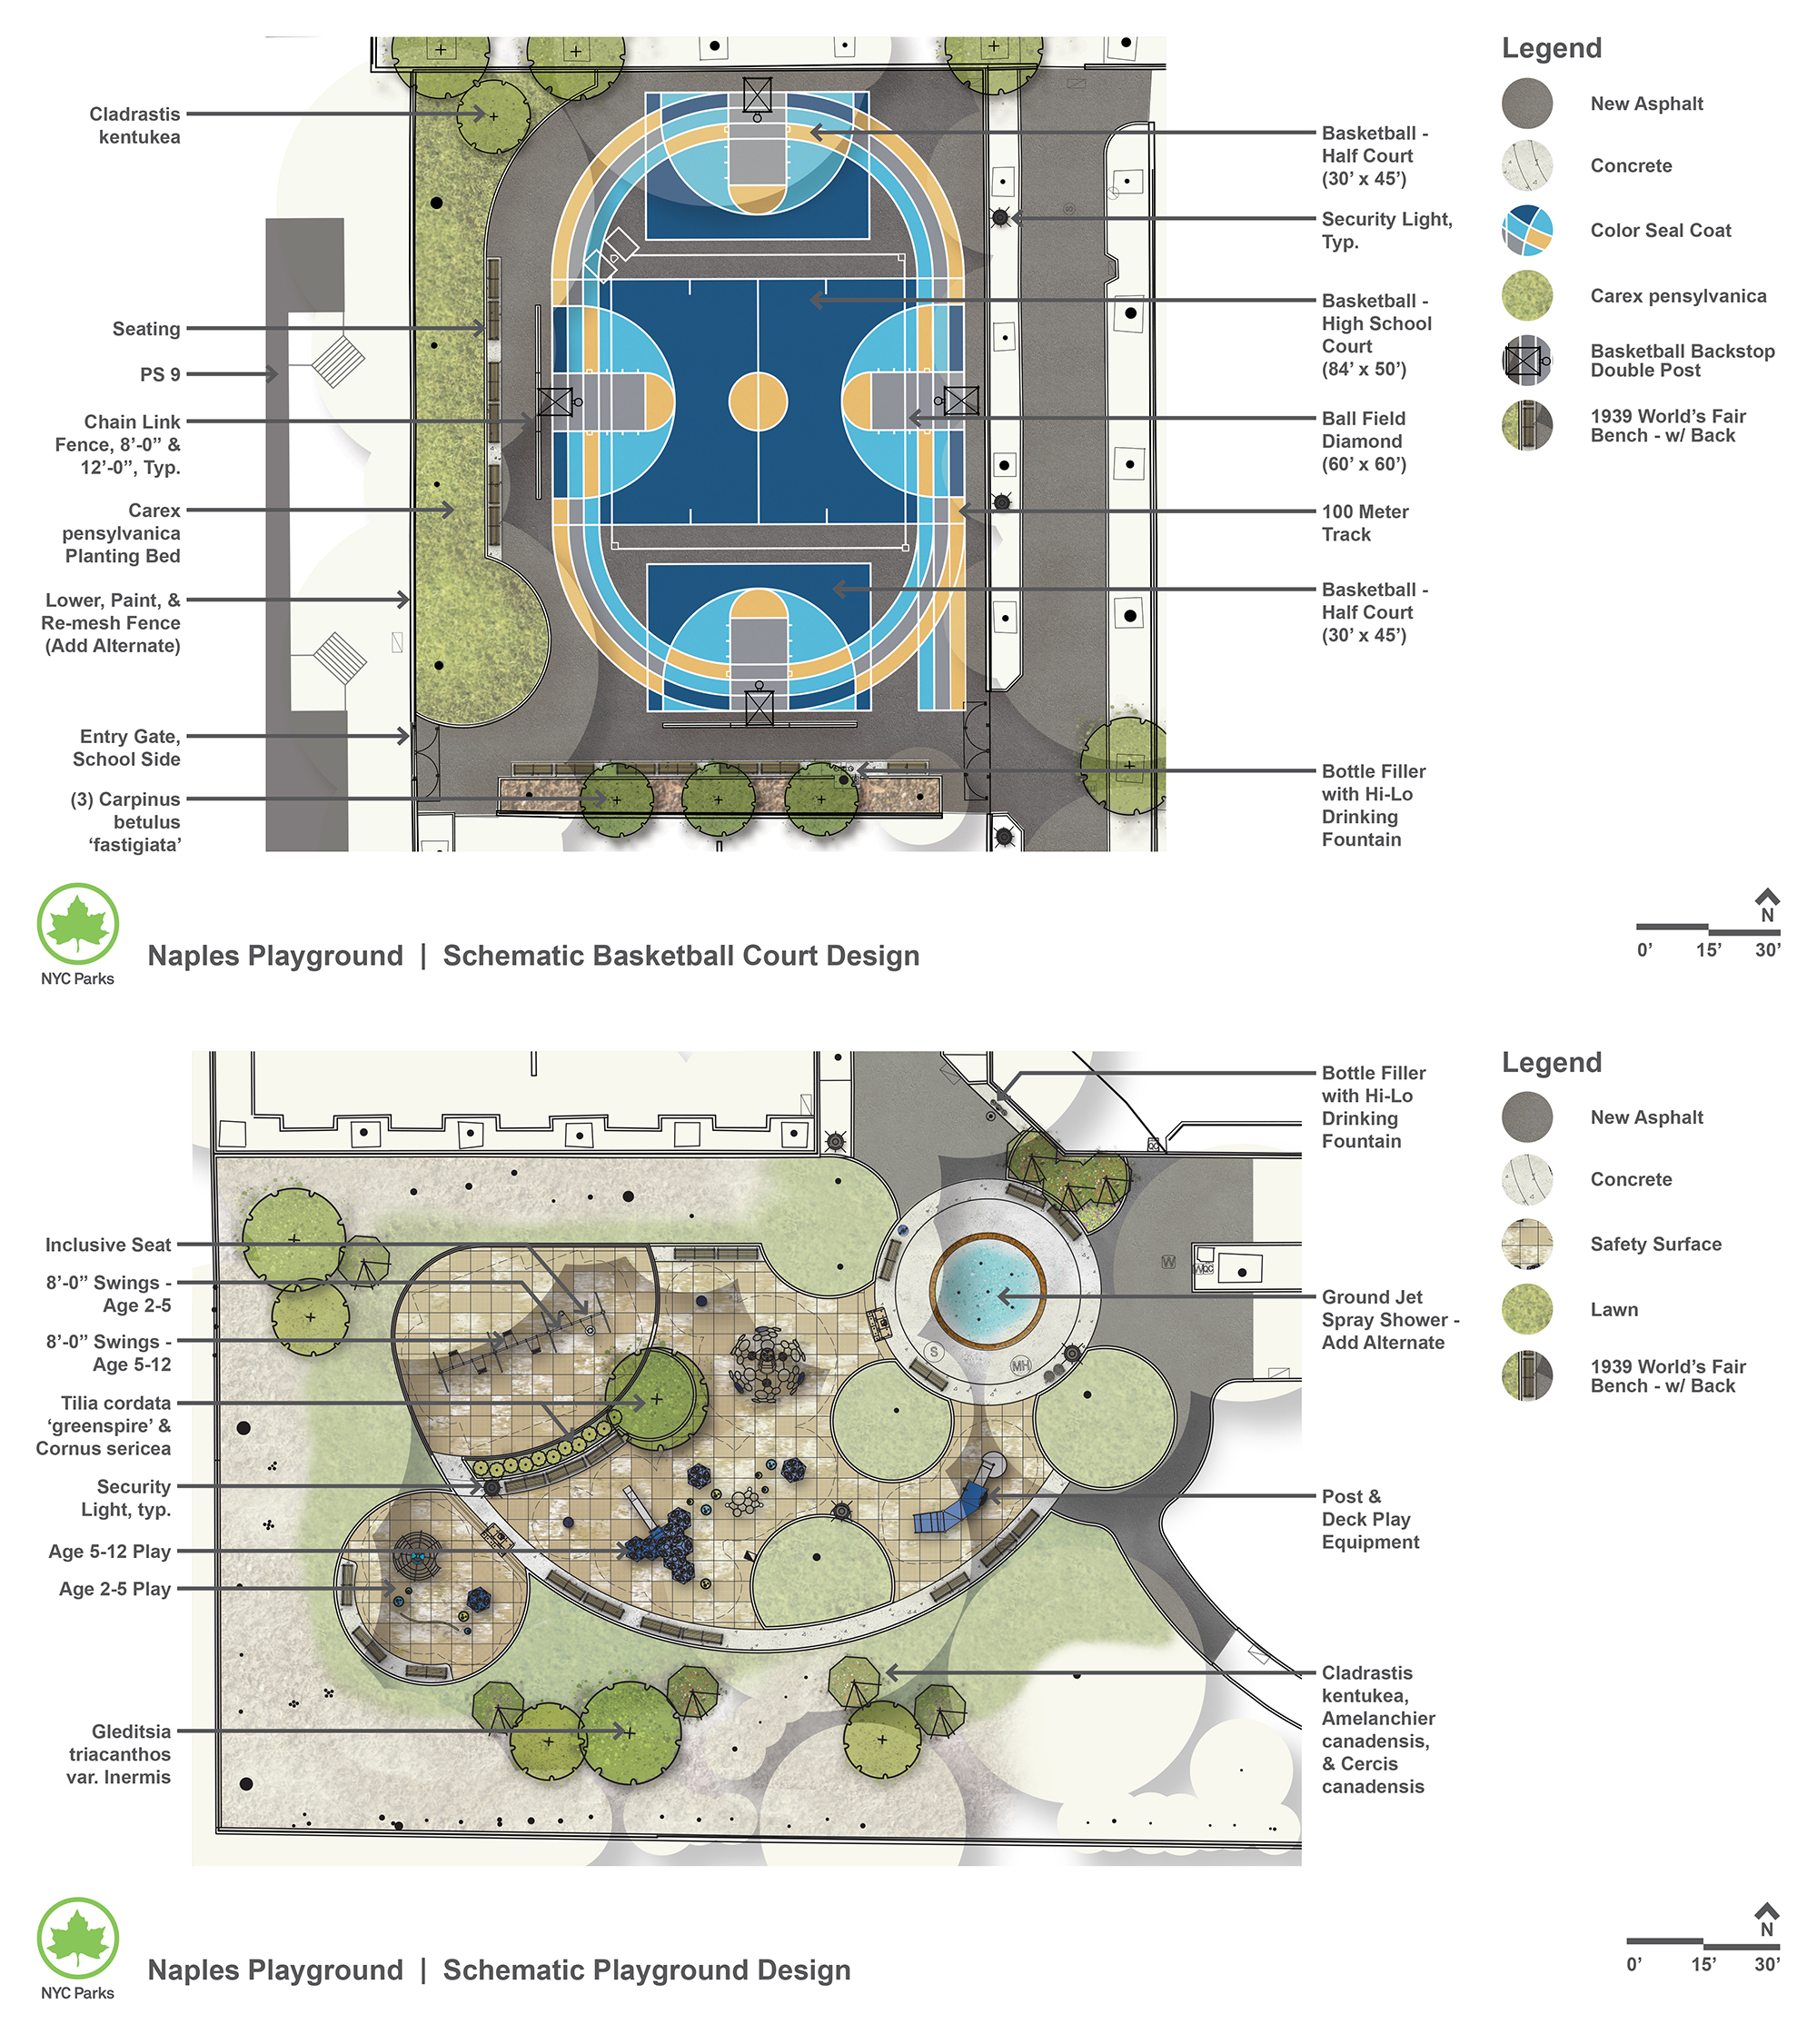 Design of Naples Playground Reconstruction